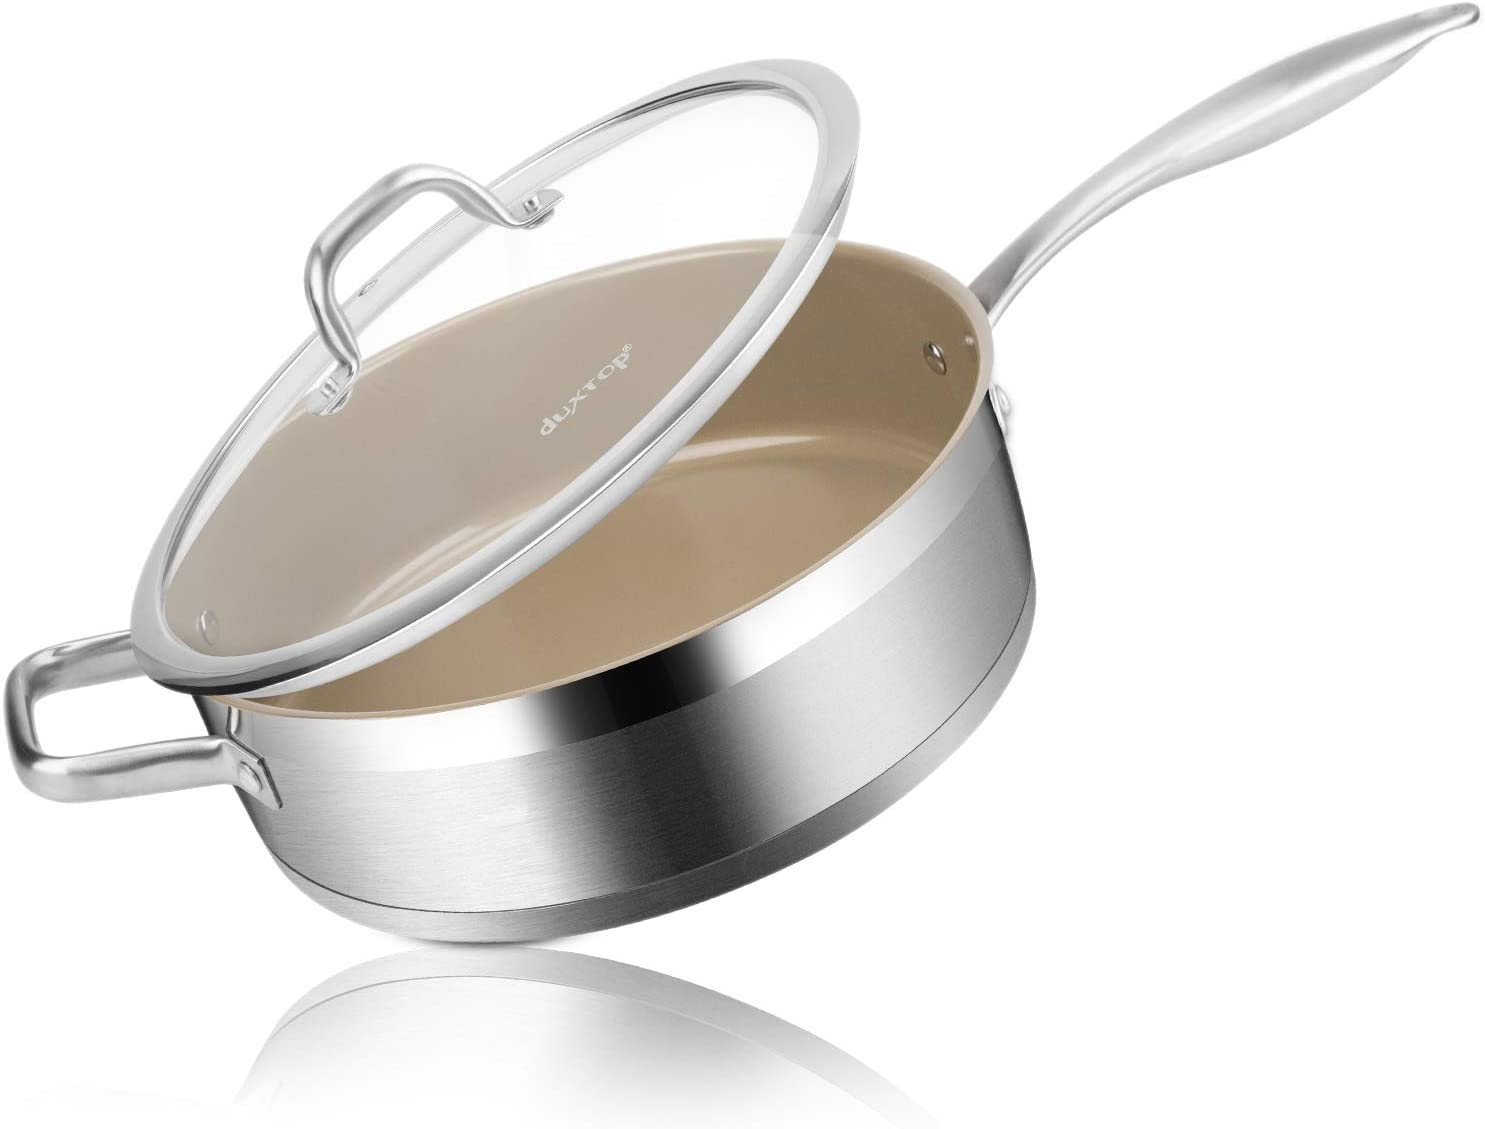 Duxtop Ceramic Non-stick Sauté Pan, Induction Stainless Steel Sauté Pan, 5.5-Qt Deep Skillet with Lid, Professional Grade and Impact-bonded Technology